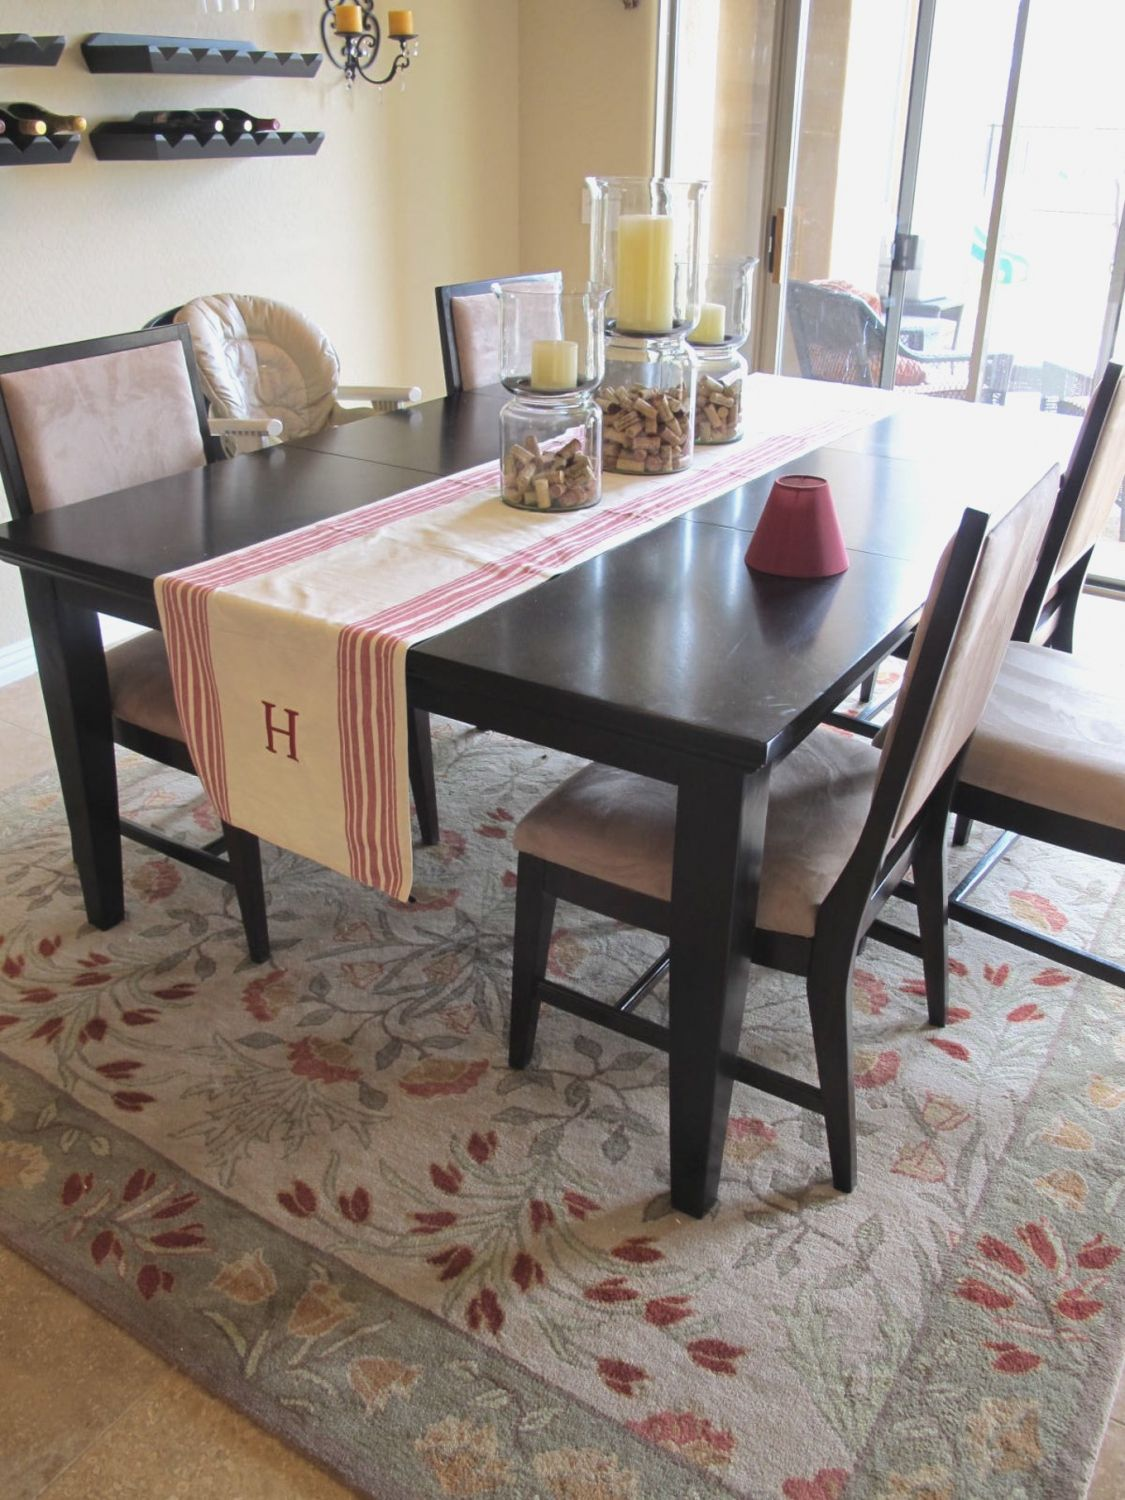 Rugs under kitchen table rustic kitchen lighting ideas check more at http www entropiads com rugs under kitchen table